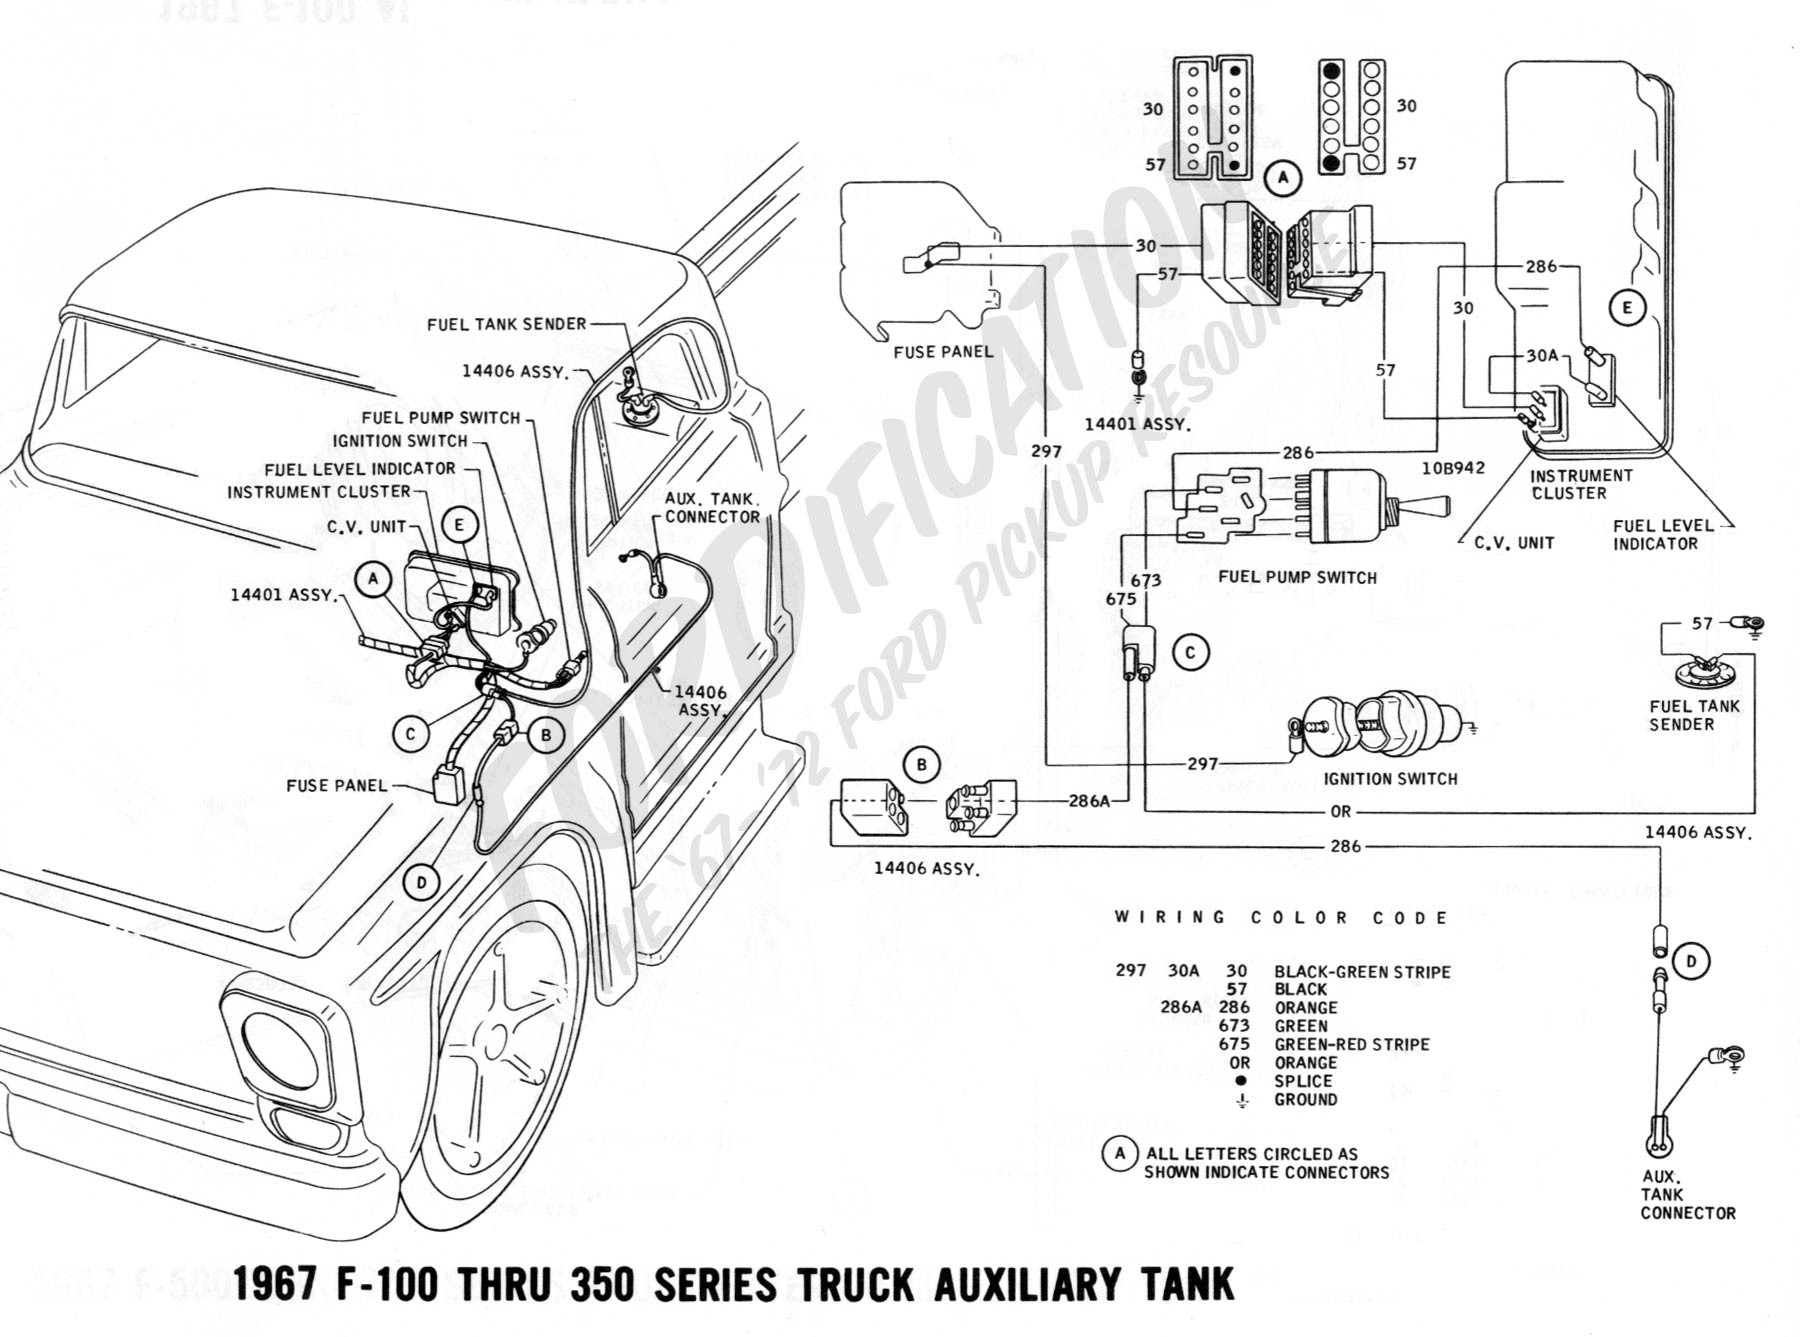 1967 F150 Wiring Diagram Detailed Schematics 1989 Ford Festiva Inspirational Image 2011 F 150